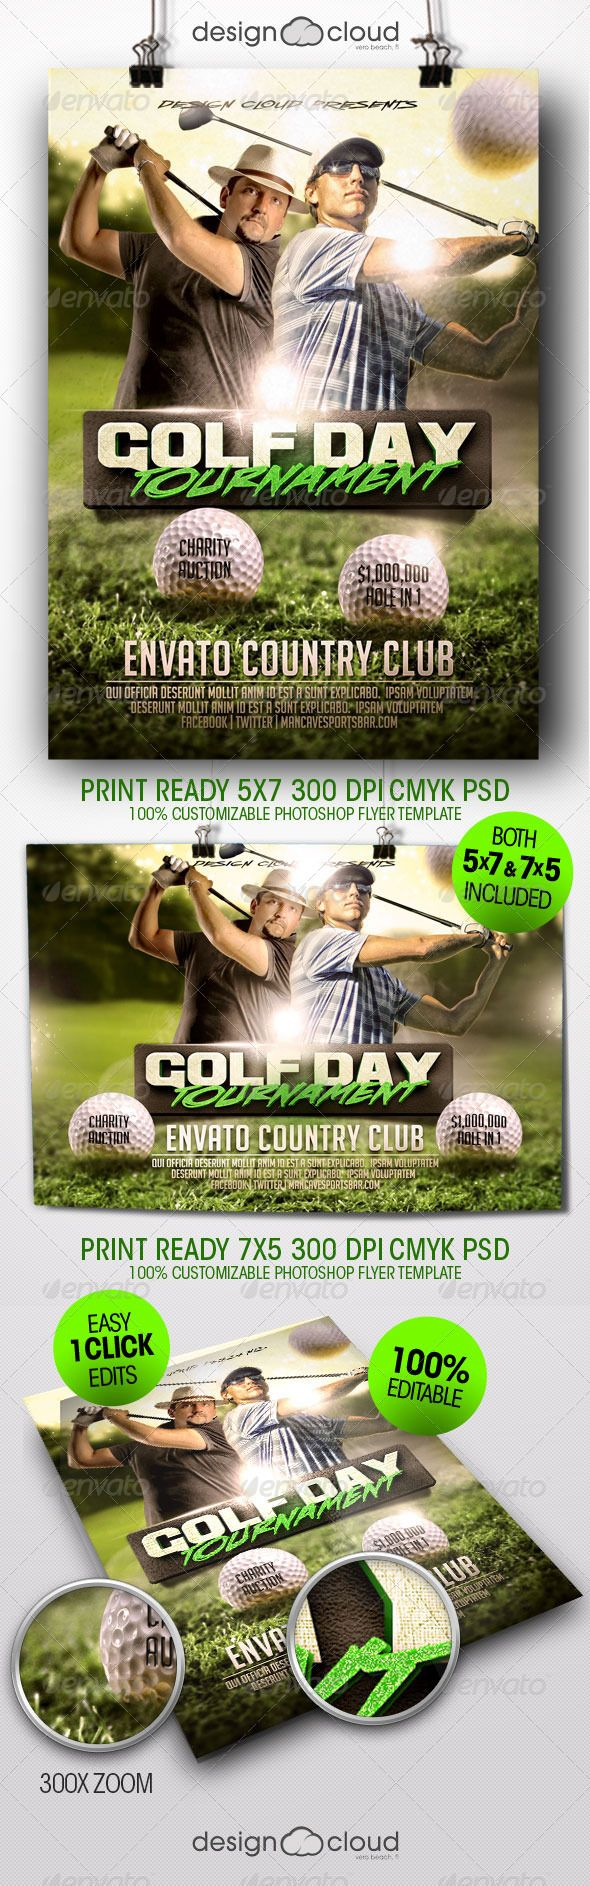 best images about golf kids charity golf party golf tour nt flyer template